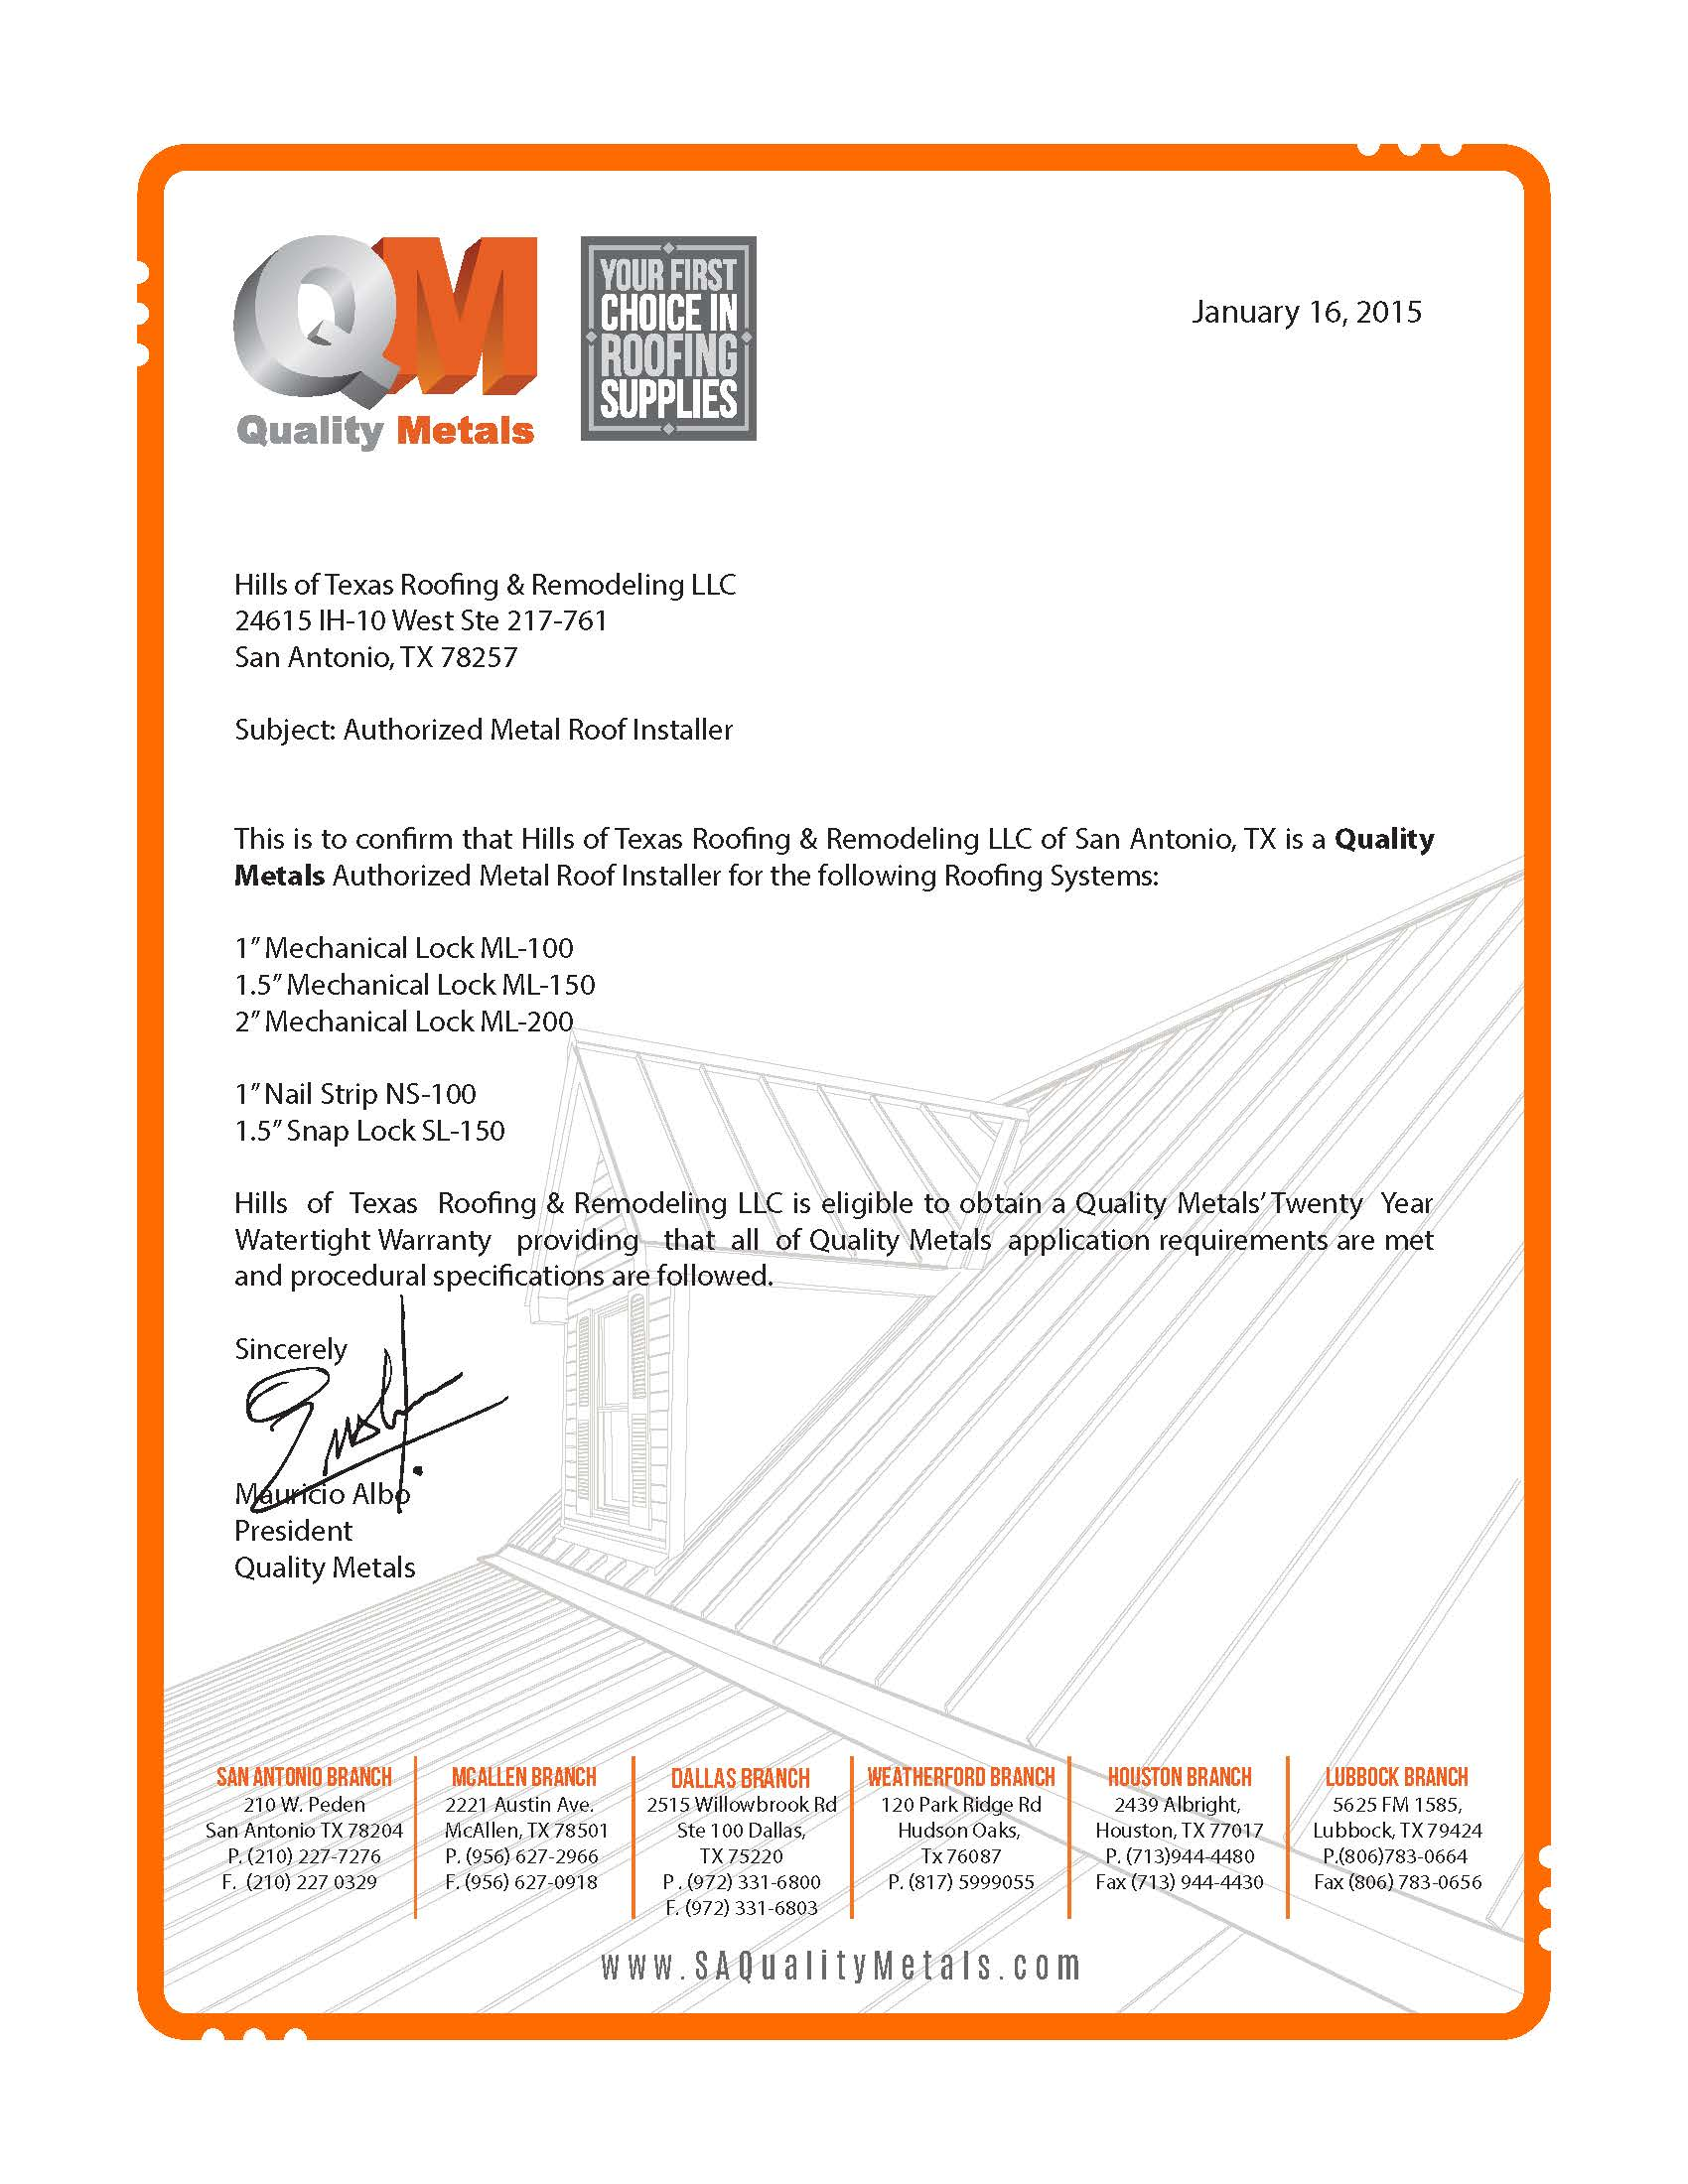 Quality Metals certifiedletter